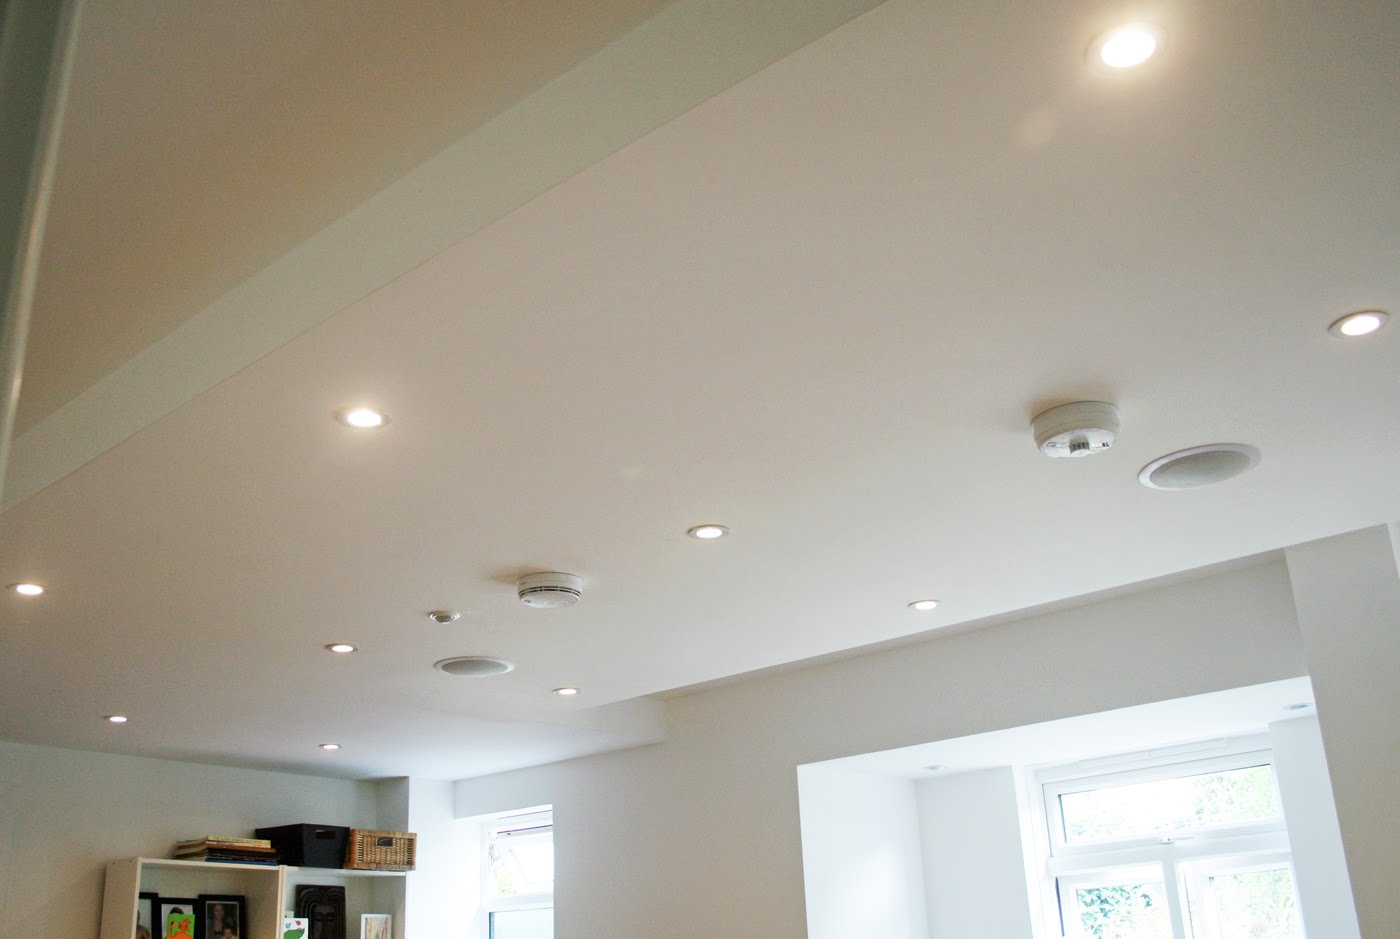 Saftey   The Main Areas Are Protected By A Premium Quality Smoke Detector,  Carbon Monoxide Detector And Heat Detector. The Hallway PIR Lighting Forms  Part ...